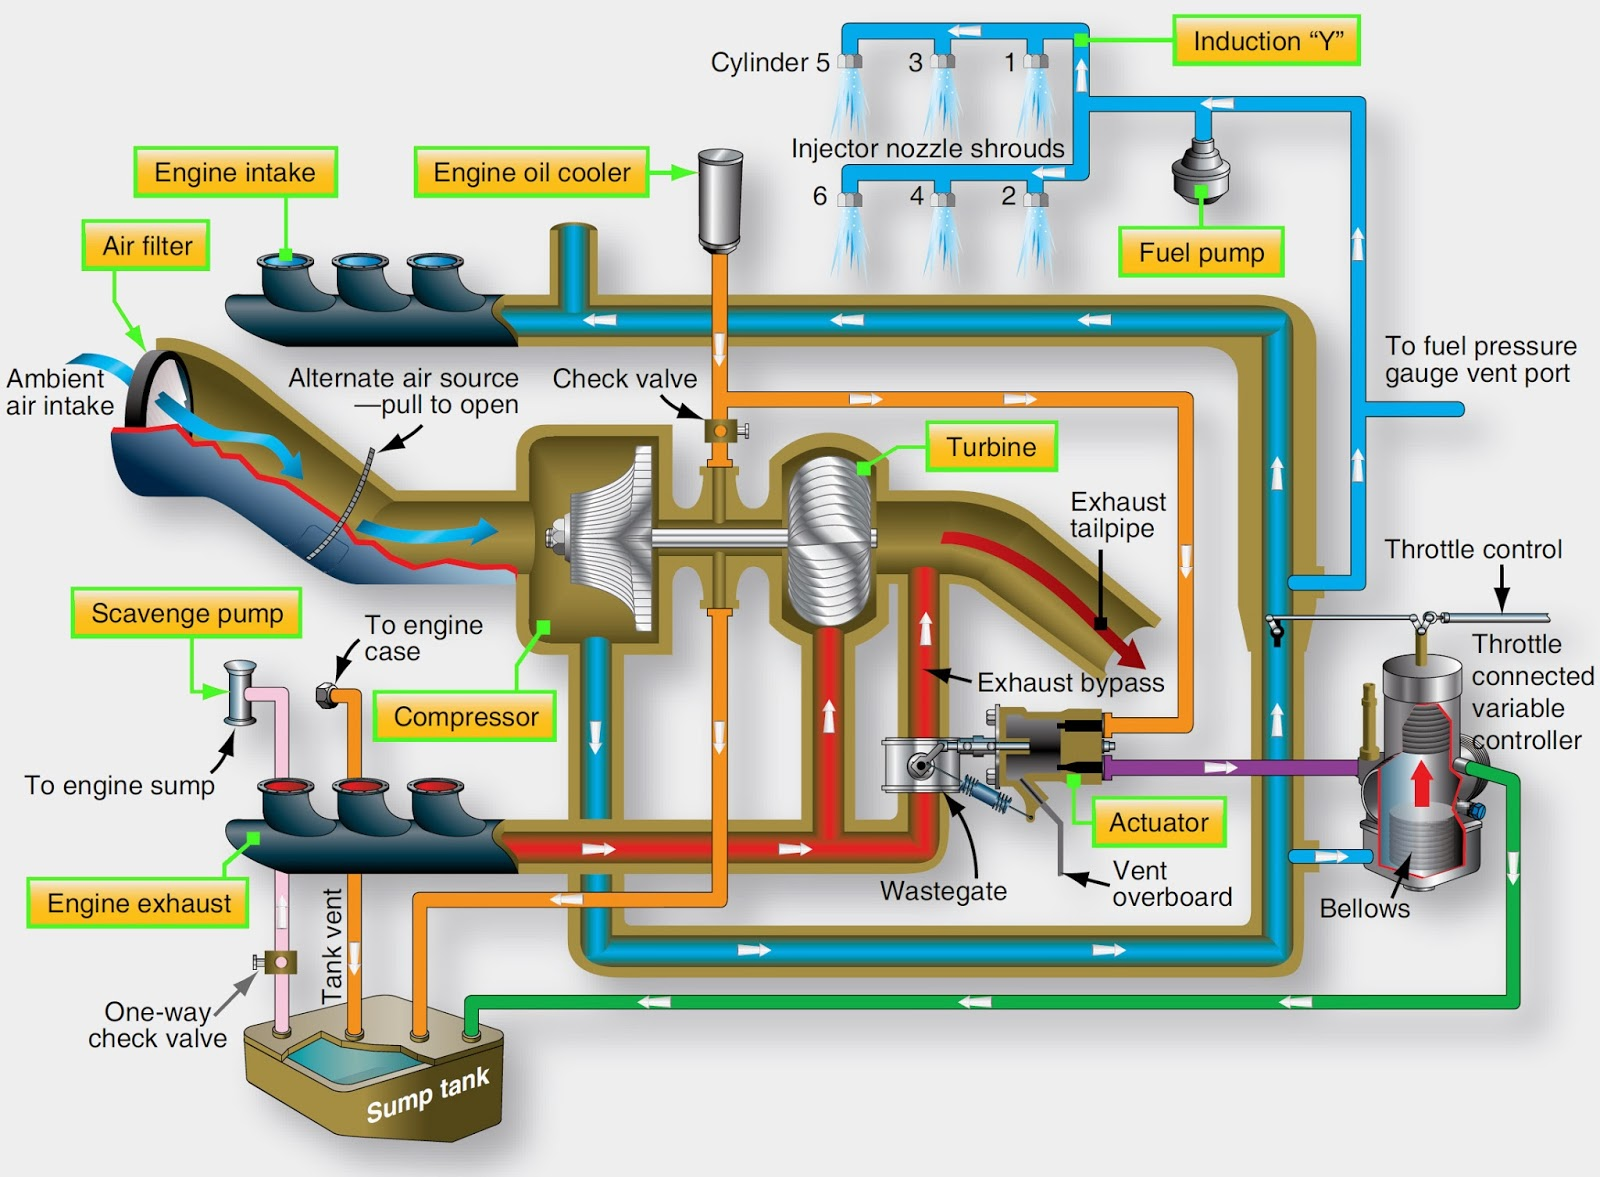 hight resolution of components of a turbocharger system engine